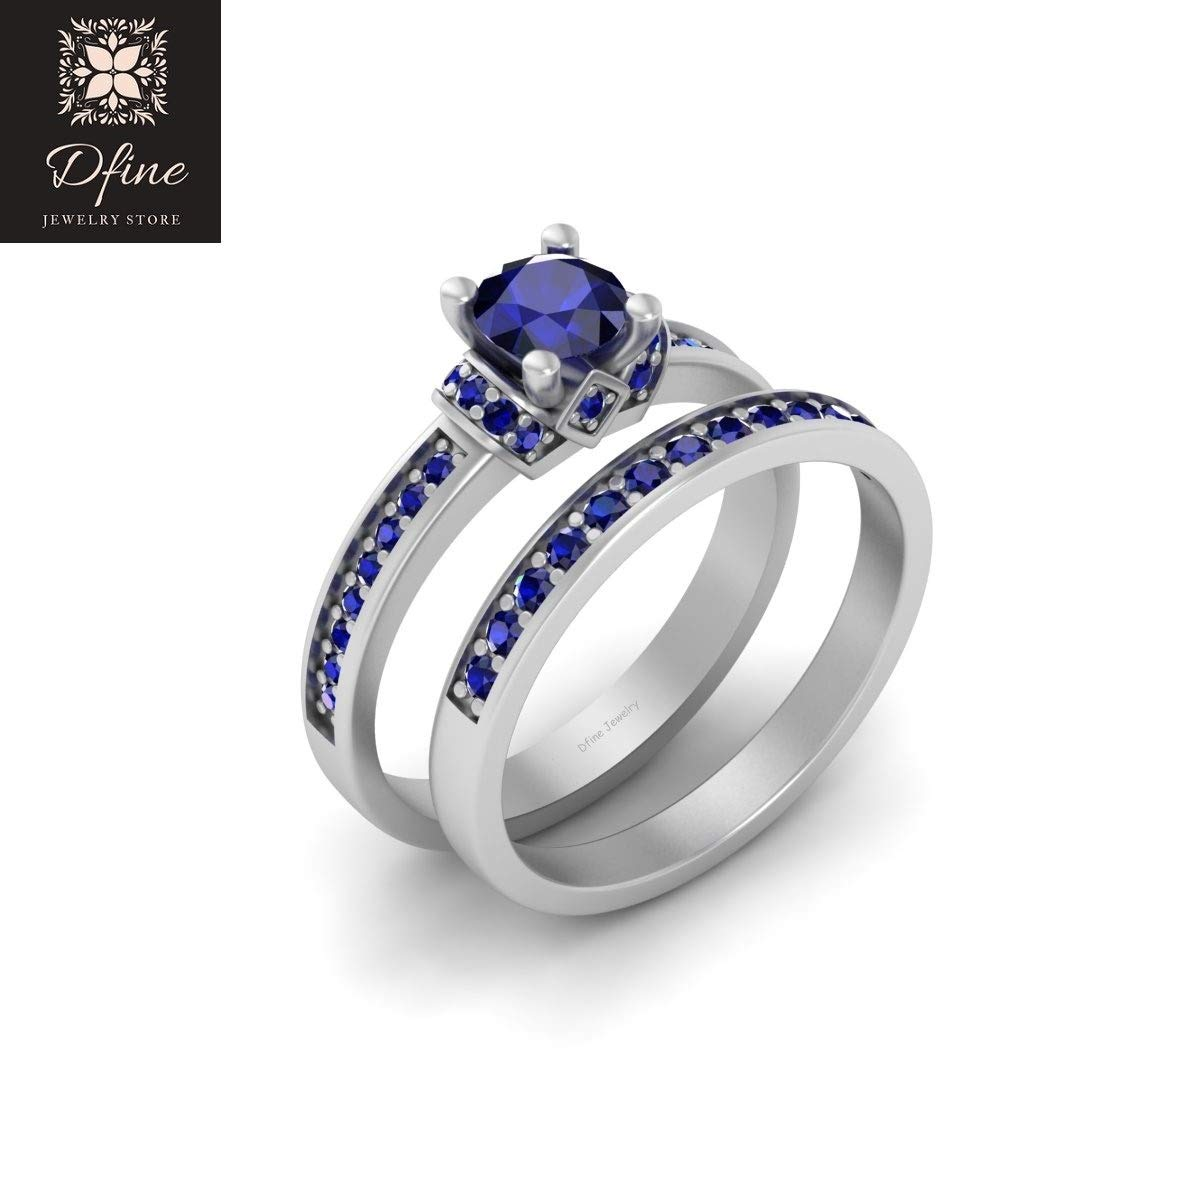 It is an image of Star Wars Engagement Ring Set Blue Sapphire Wedding Rings 40 Sterling Silver R40D40 Ring